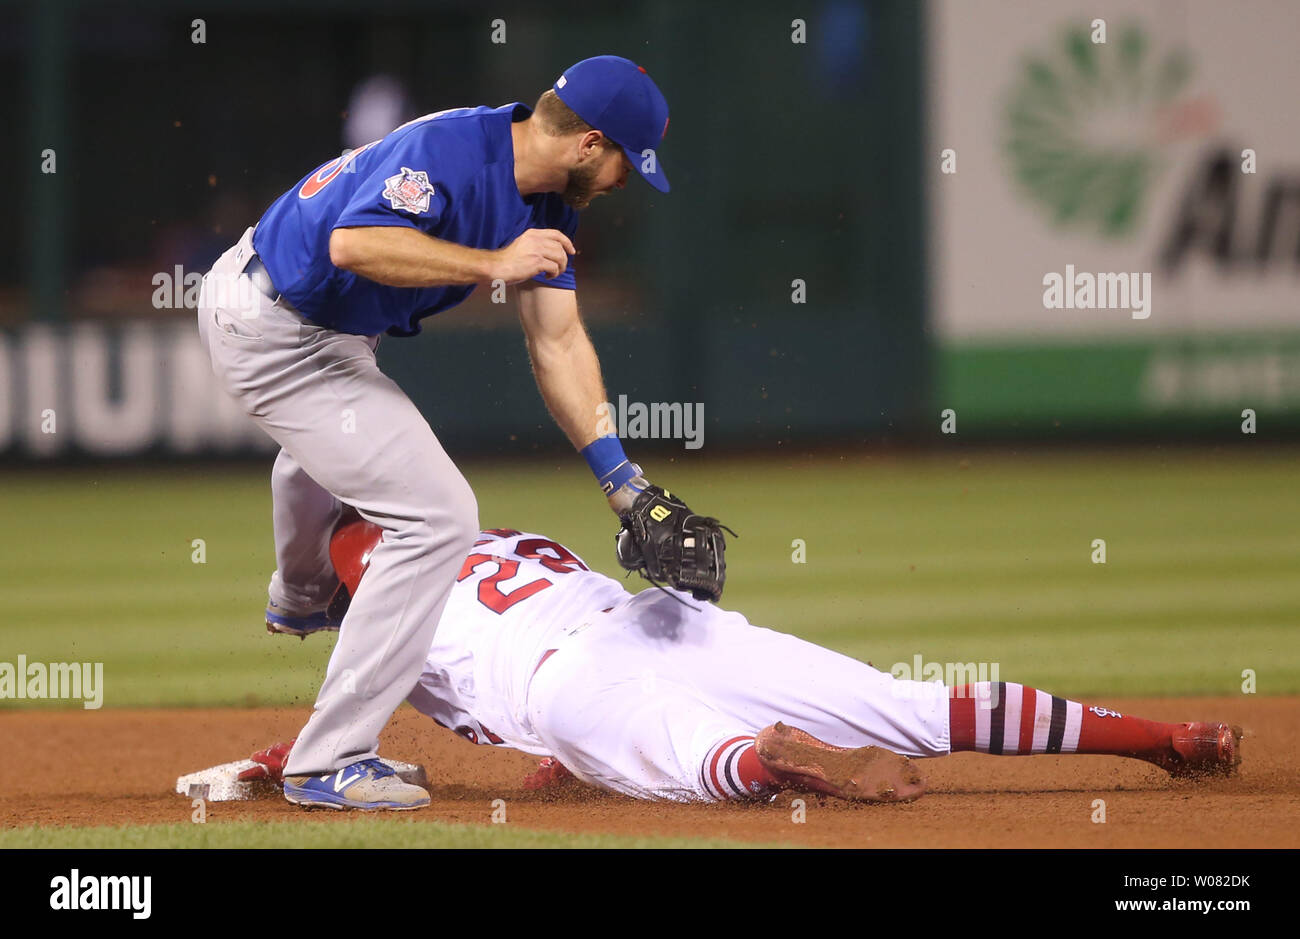 St. Louis Cardinals Tommy Pham slides under the late tag by Chicago Cubs Mike Freeman, stealing second base in the sixth inning at Busch Stadium in St. Louis on September 28, 2017. Photo by Bill Greenblatt/UPI Stock Photo